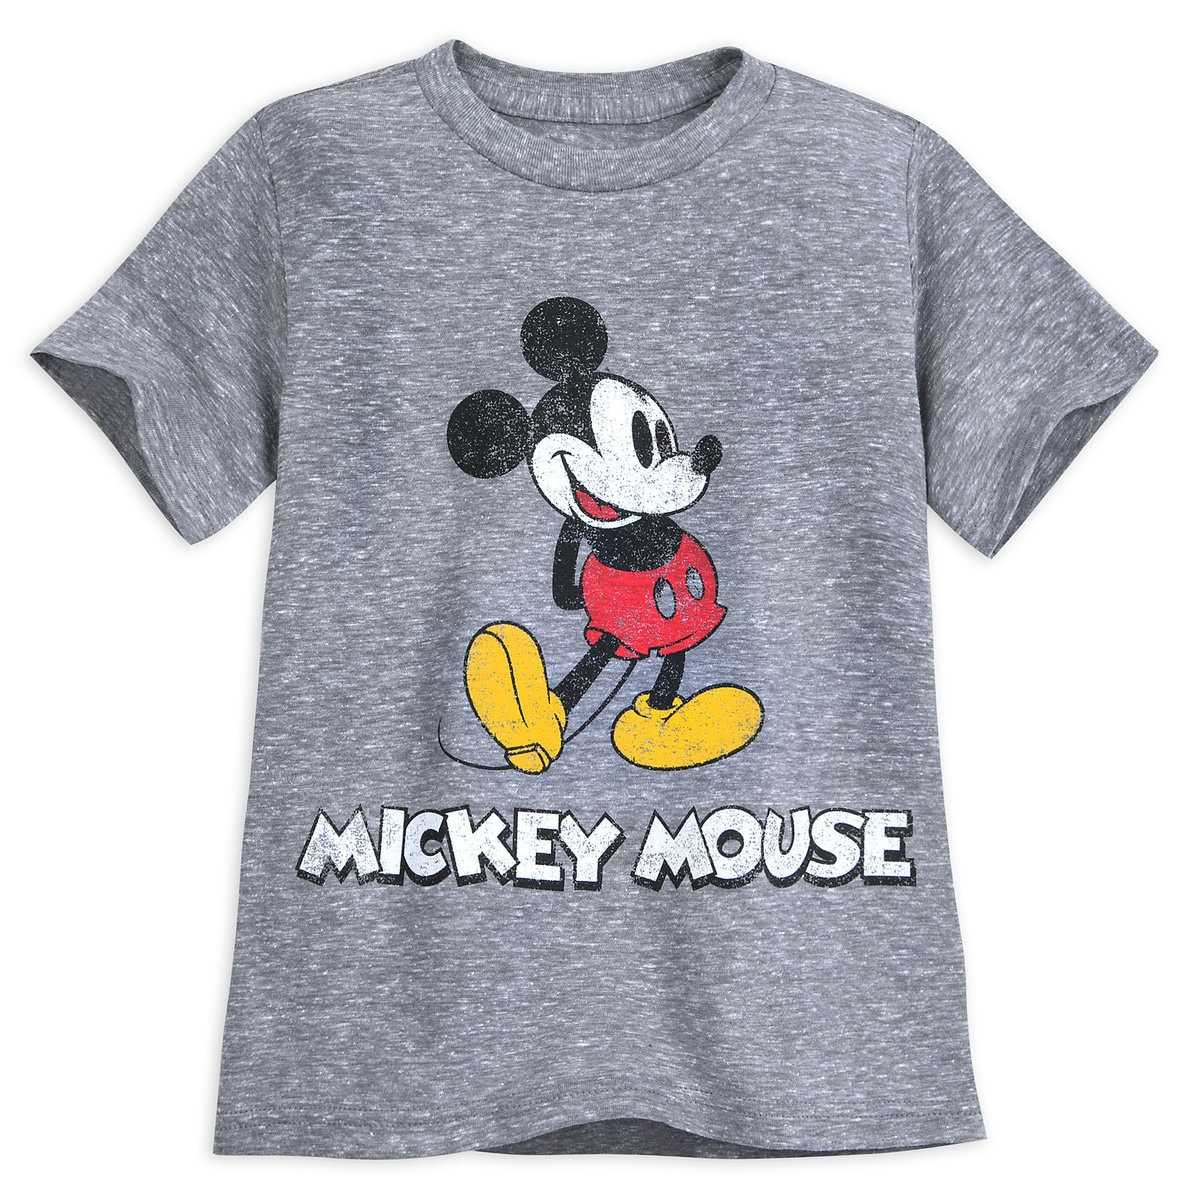 b5dff0a15d0 Product Image of Mickey Mouse Classic T-Shirt for Boys - Gray   1